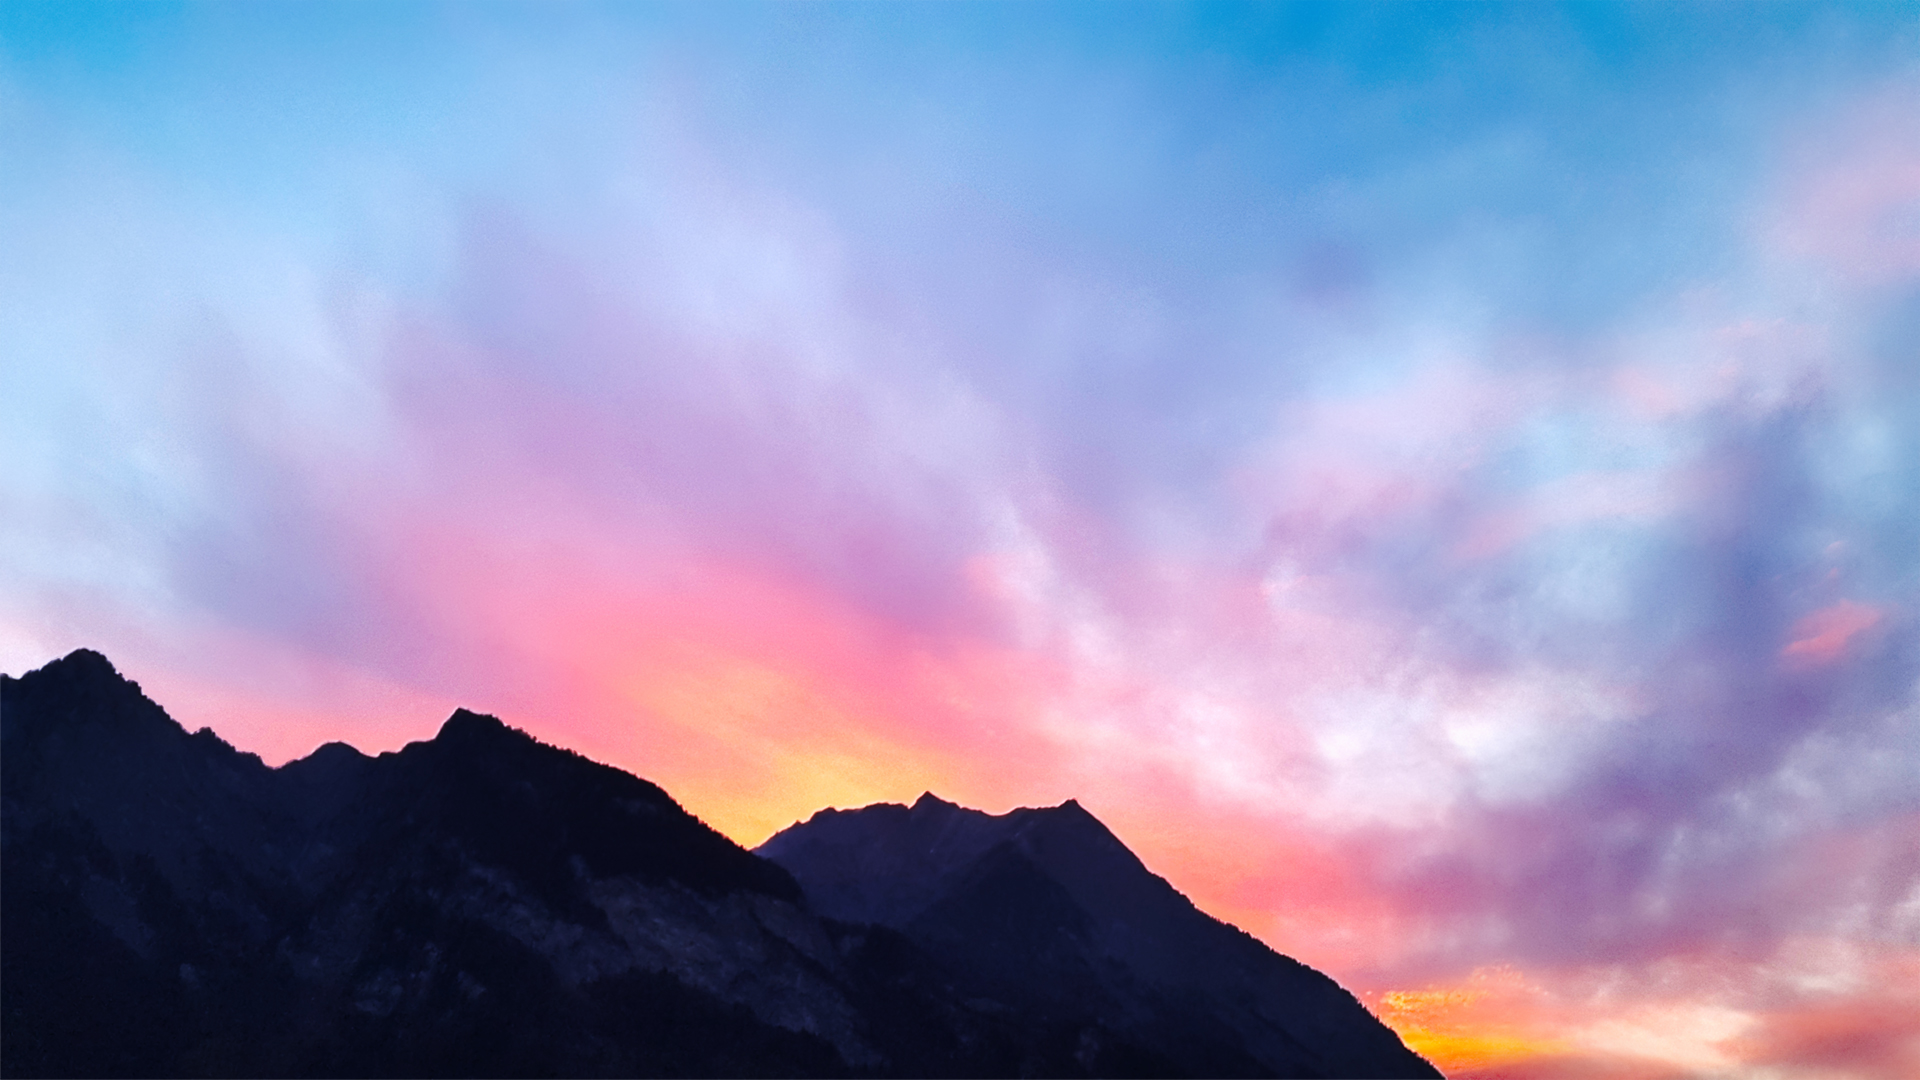 Colorful-Sunrise-in-Liechtenstein-OC1920x1080-r-SunriseSunset-wallpaper-wpc5803586